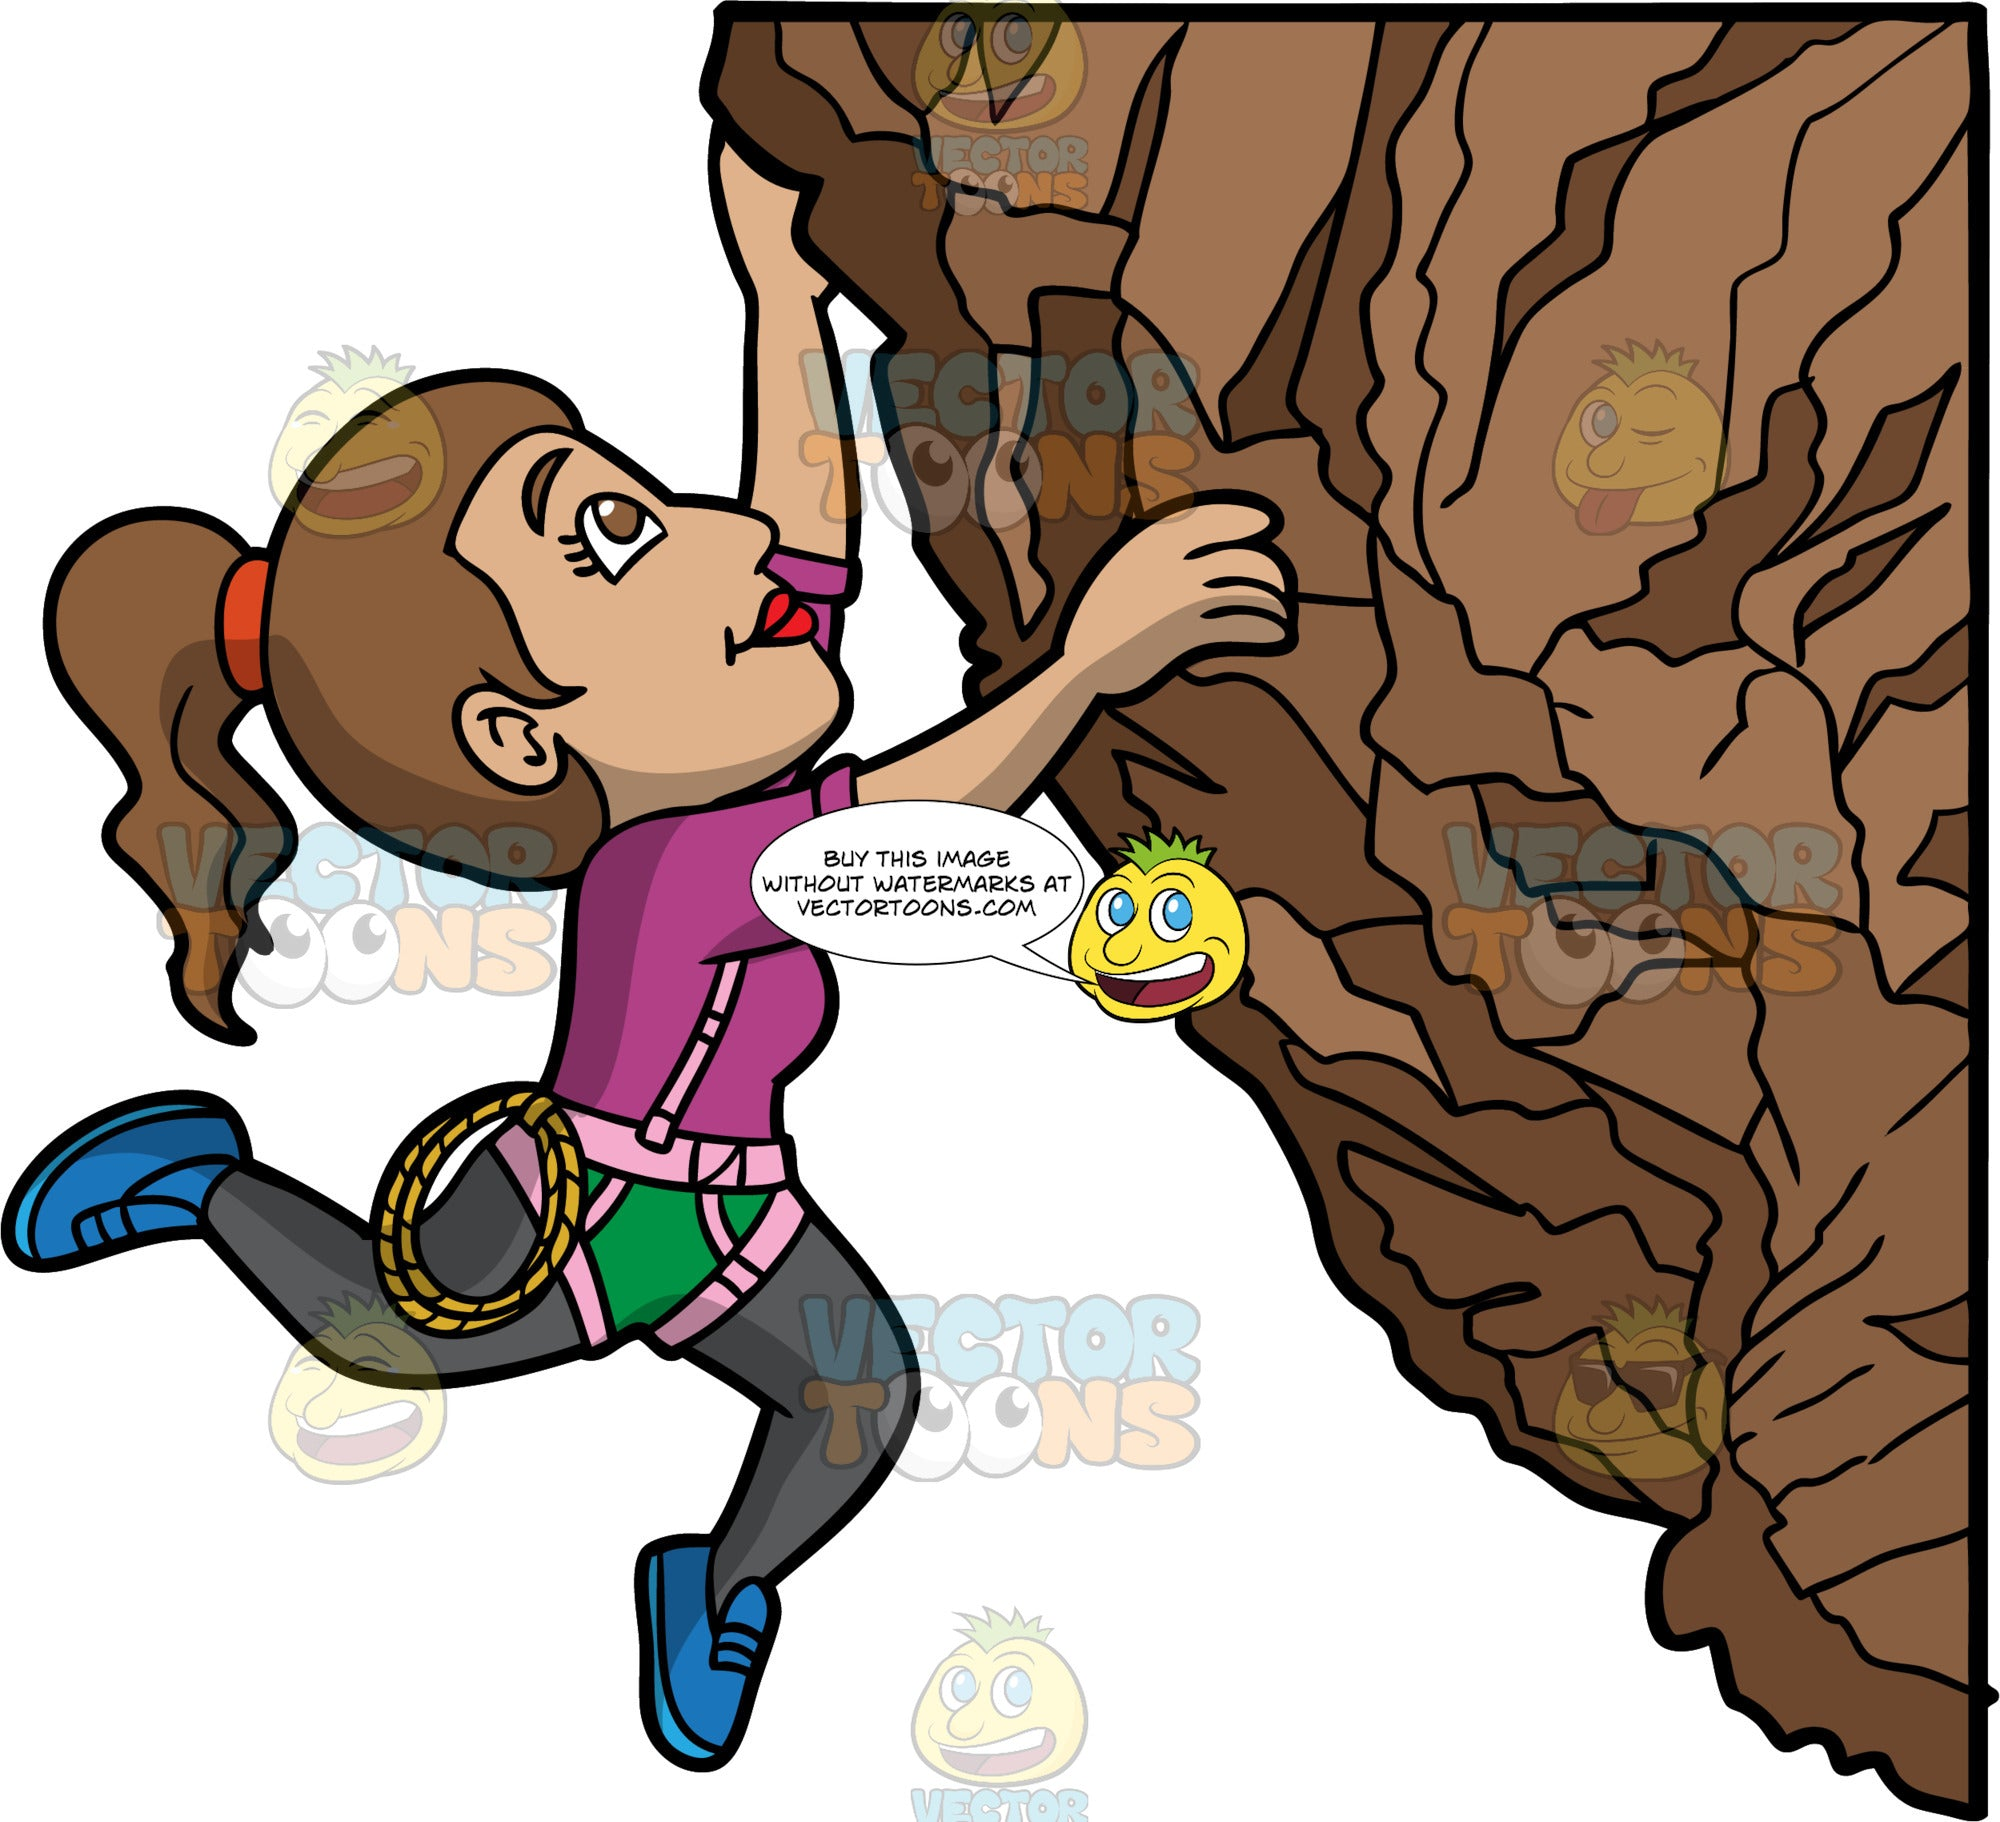 A Woman Hanging From A Rock Cliff. A woman with brown hair tied in a pony tail, wearing green shorts over dark gray leggings, a purple shirt, pink harness, and blue rock climbing shoes, uses her upper body strength to hang onto the side of a rock wall